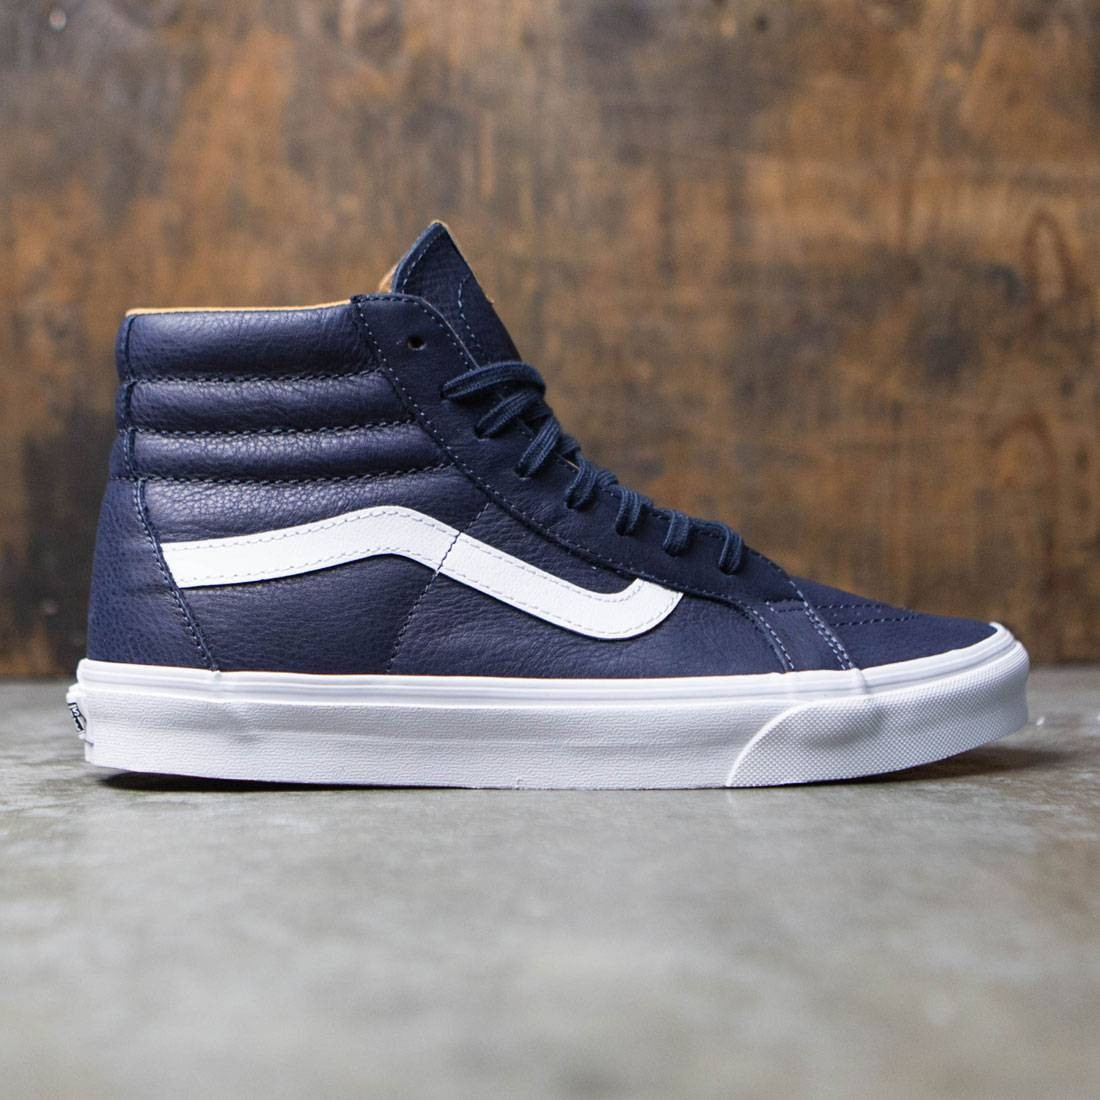 6d12b3f425 Vans Men Sk8-Hi Reissue - Premium Leather blue parisian night true white